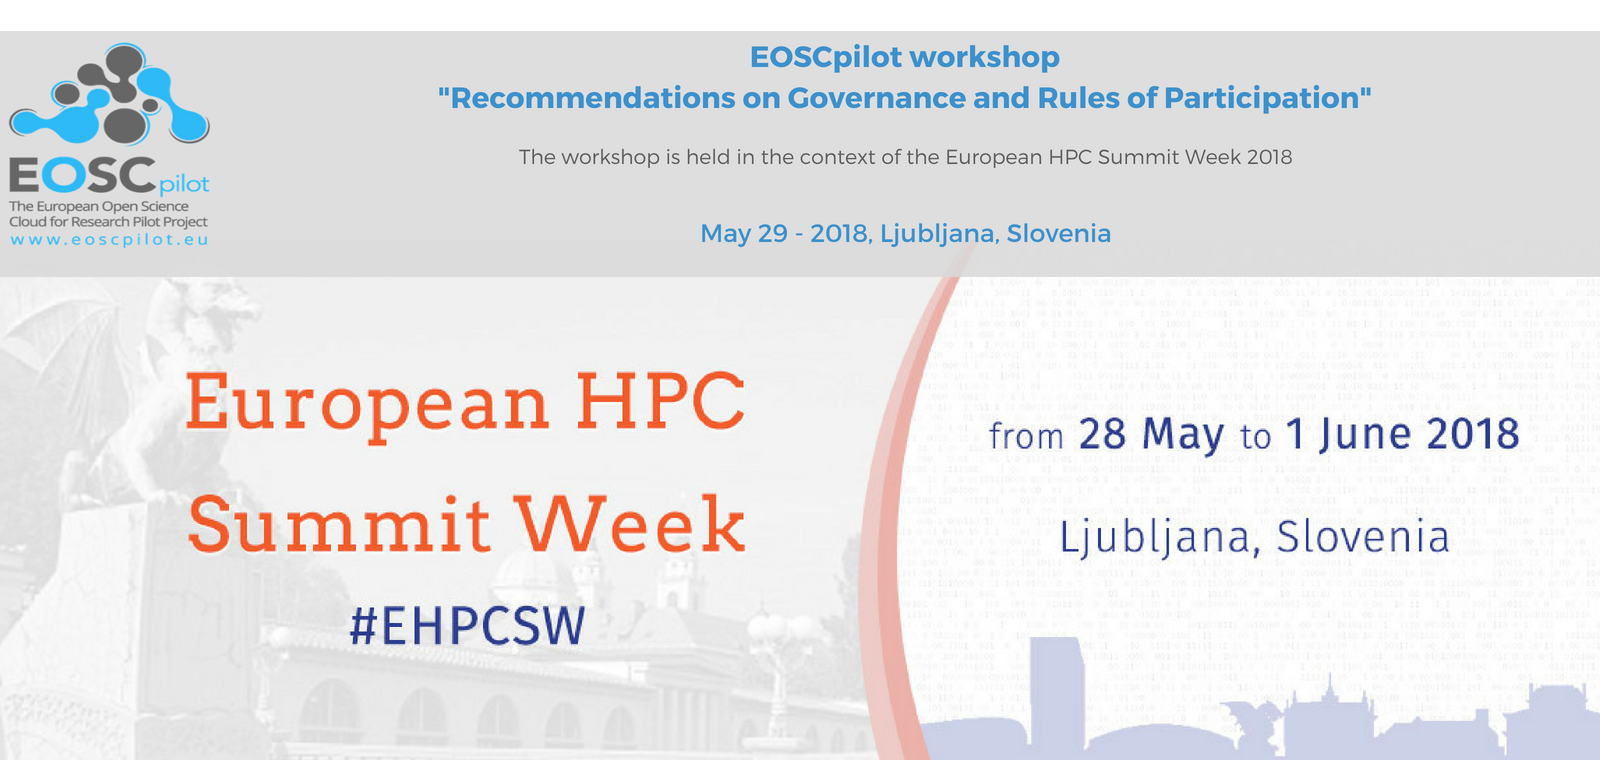 EOSCpilot workshop: recommendations on Governance and Rules of Participation